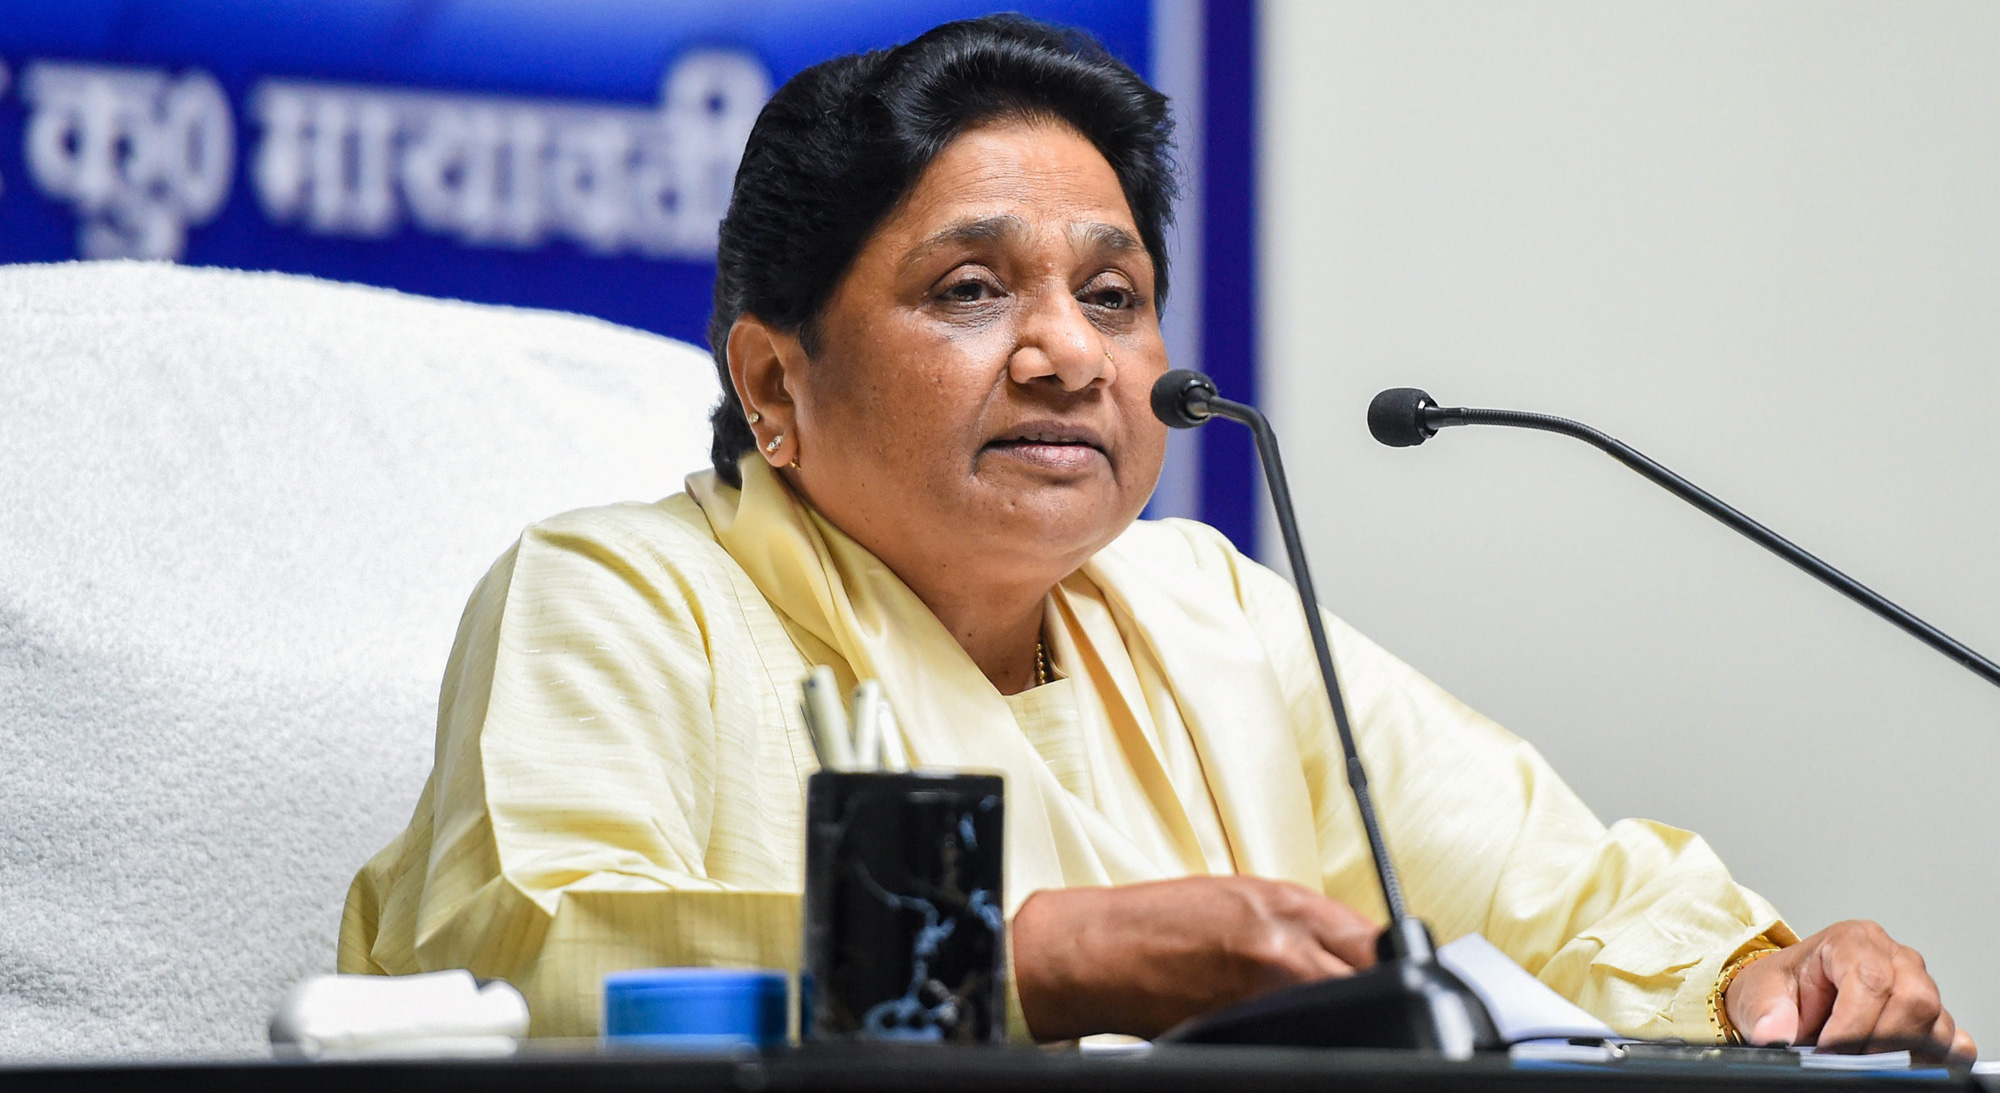 Bahujan Samaj Party president Mayawati addresses a press conference after Election Commission banned her from campaigning for two days, in Lucknow on Monday, April 15, 2019.